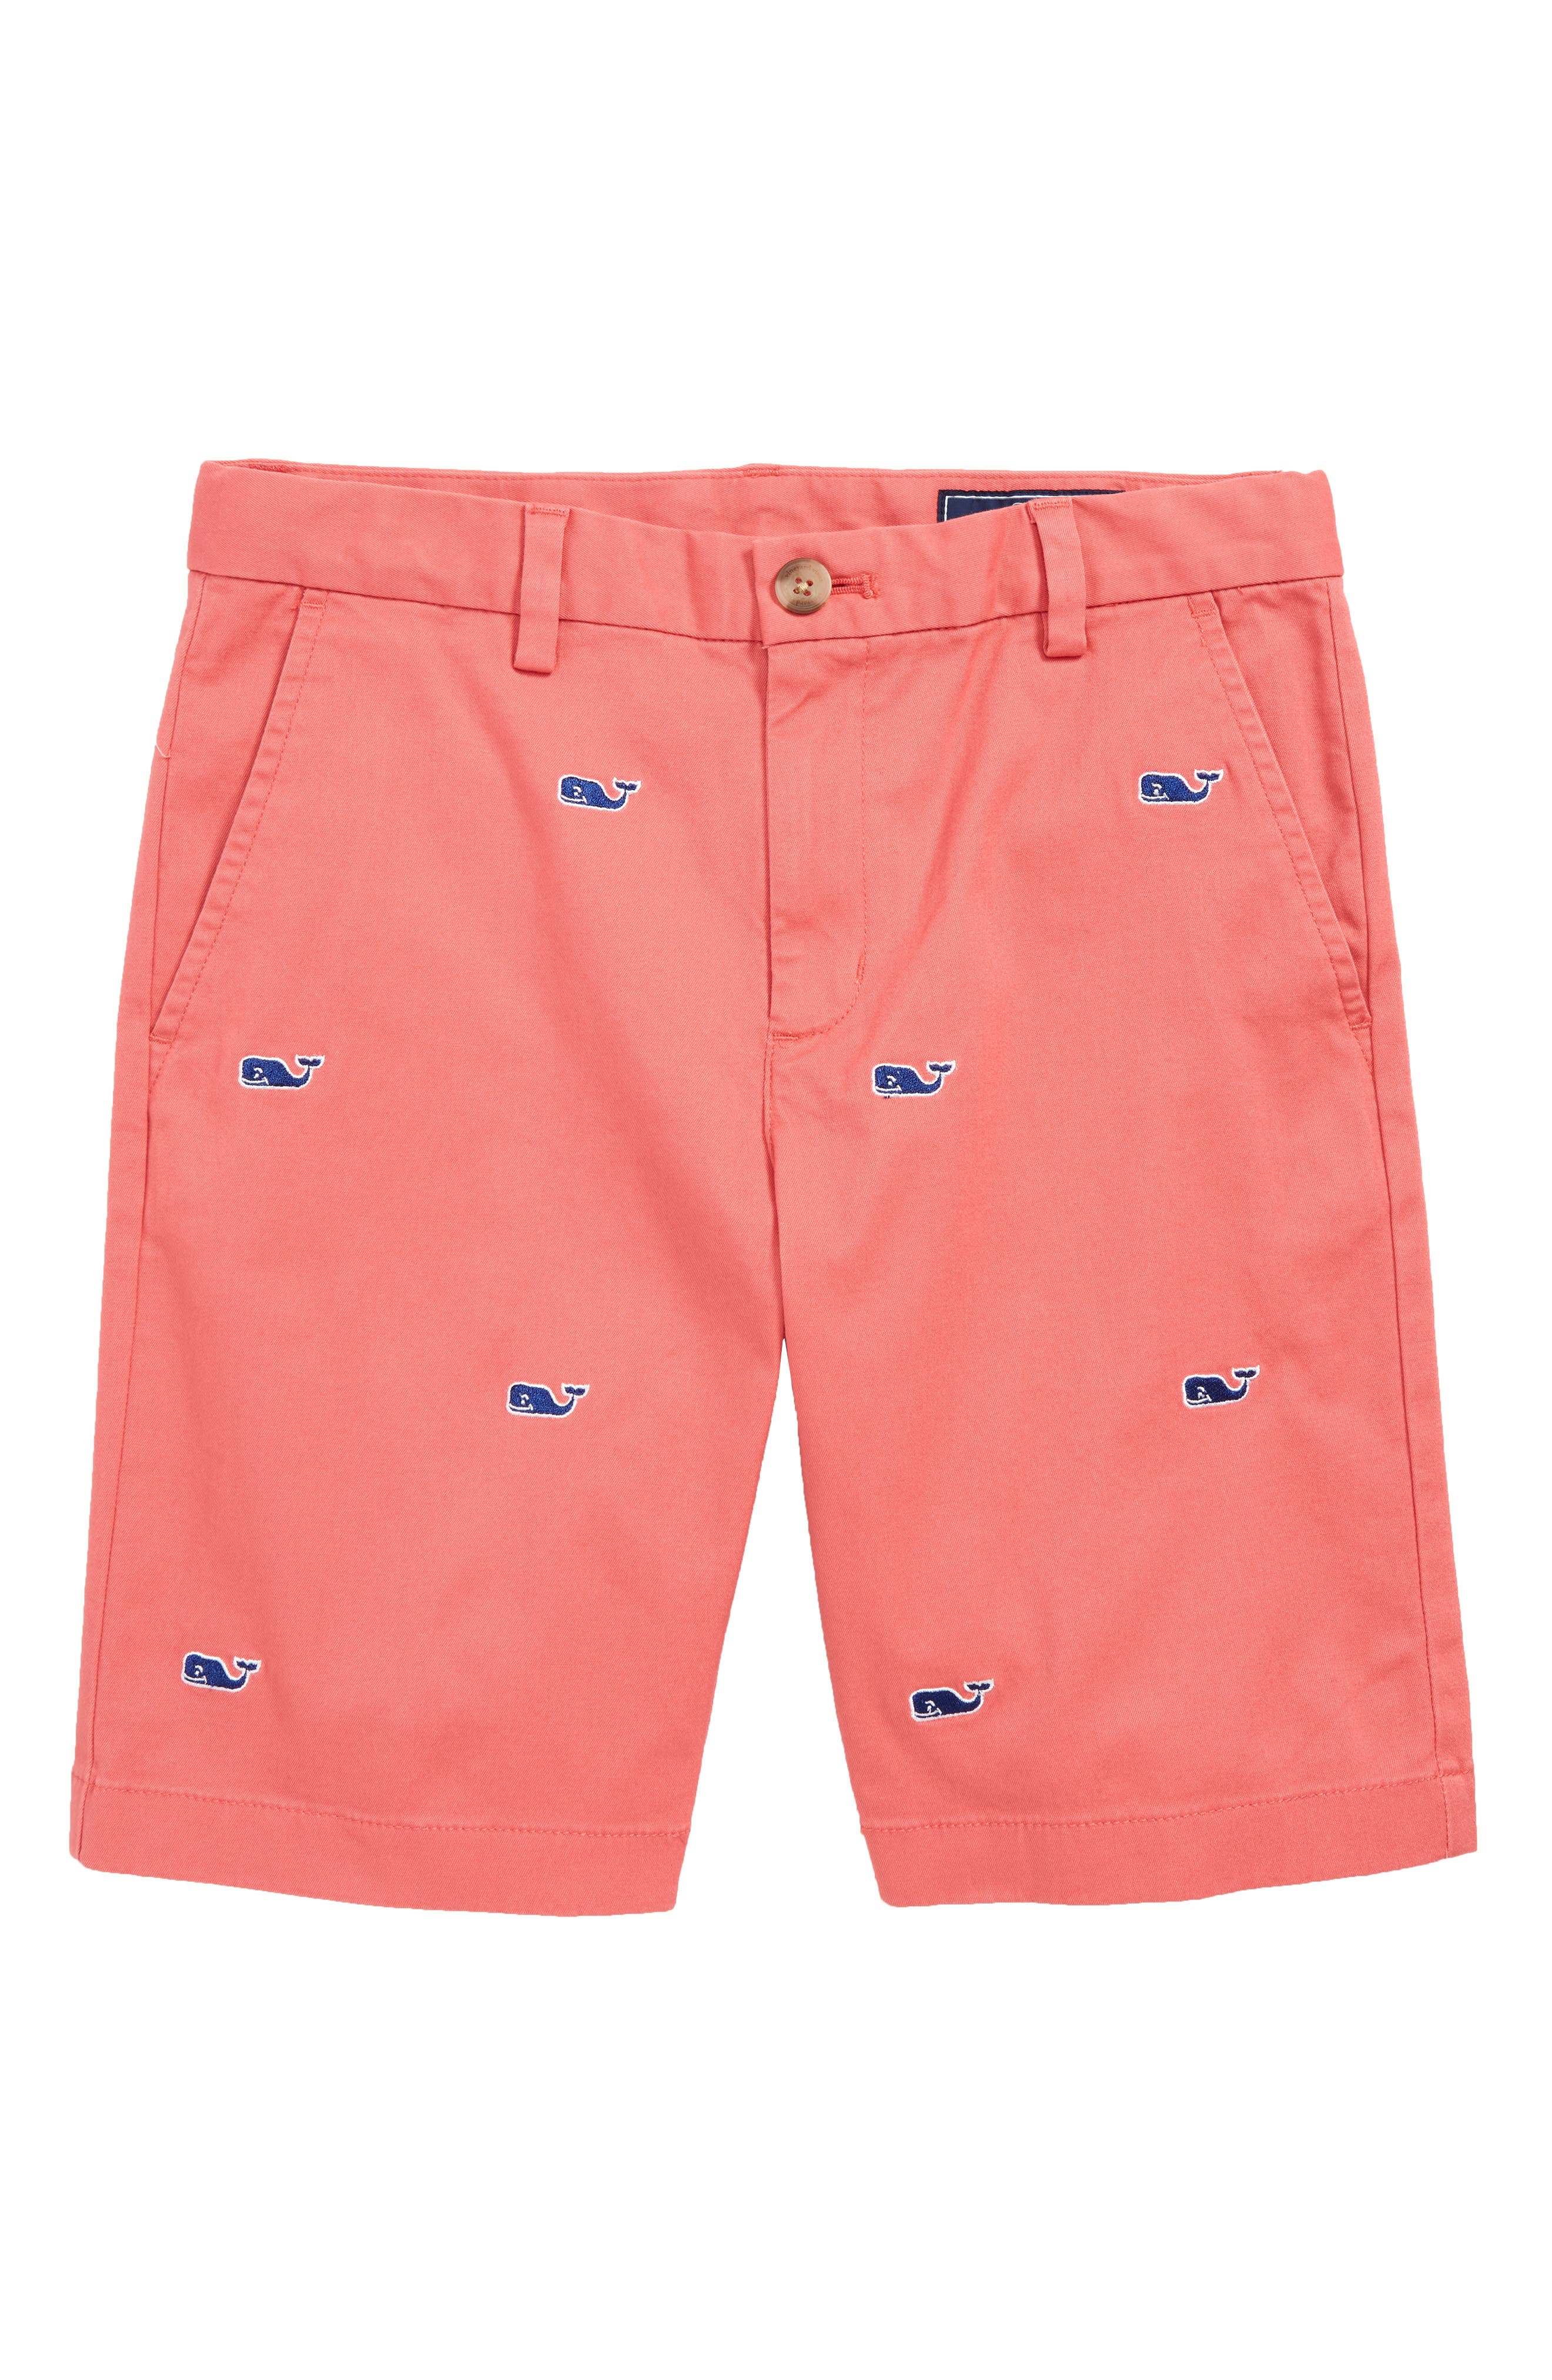 VINEYARD VINES,                             Embroidered Stretch Breaker Shorts,                             Main thumbnail 1, color,                             JETTY RED